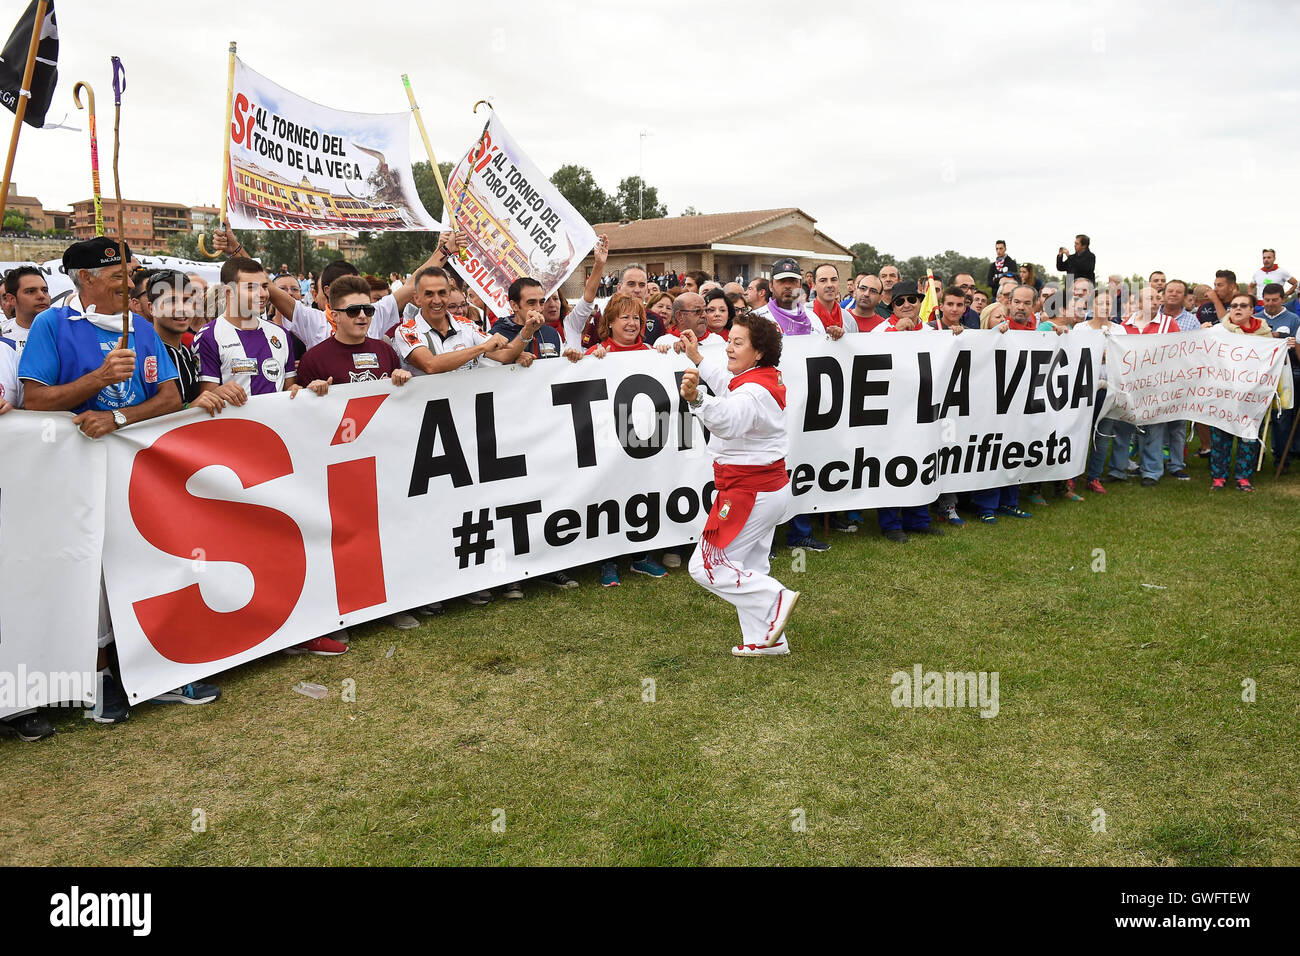 Toros Silla 2016 Tordesillas Spain 13th September 2016 Protests At The Toro De